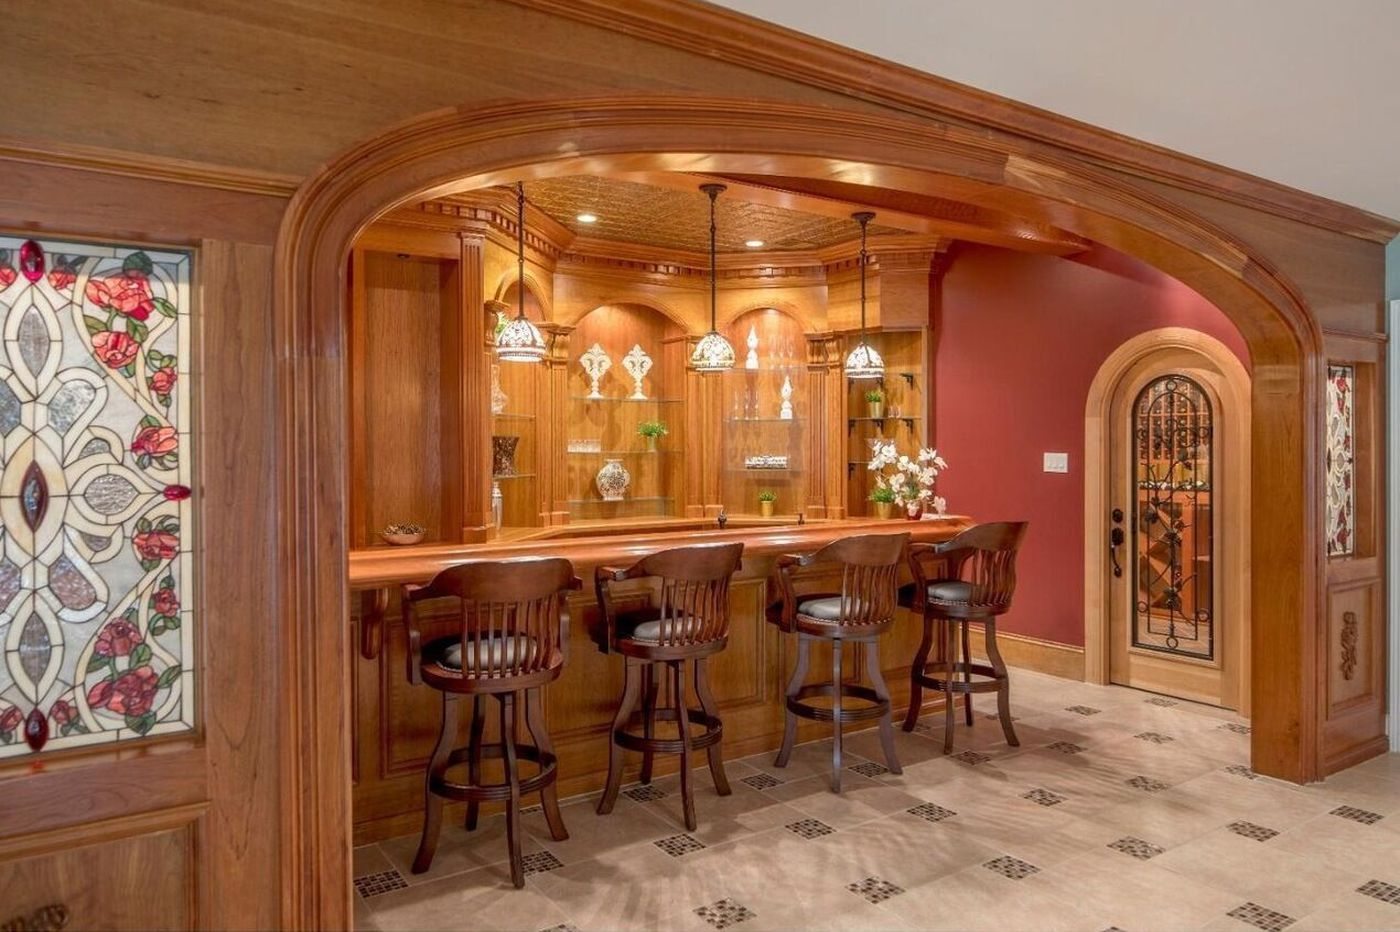 Three suburban Philadelphia homes with impressive wet bars